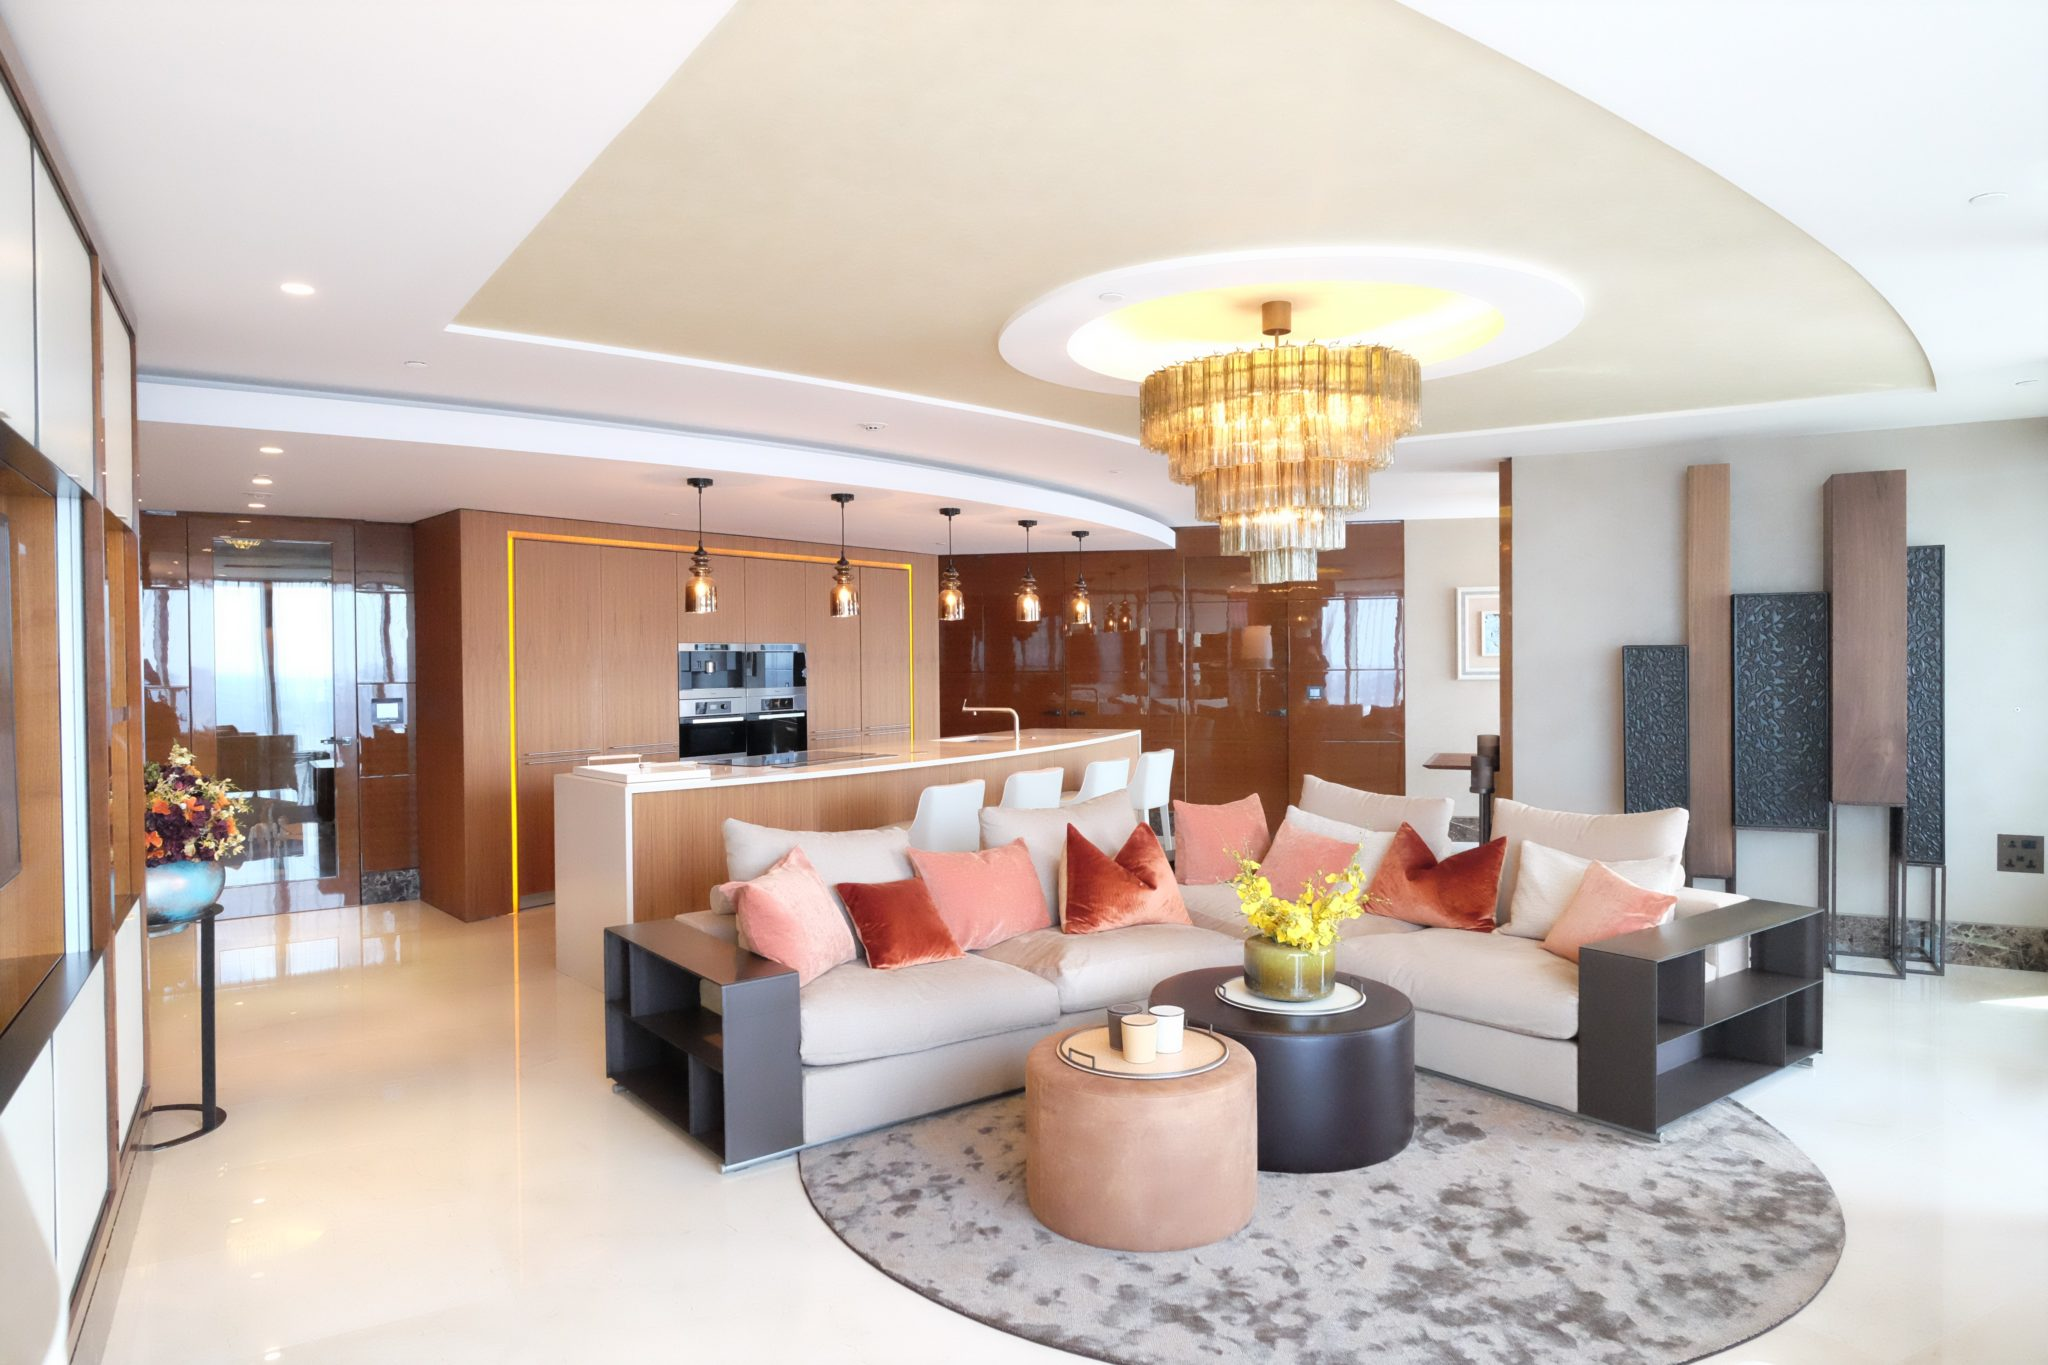 Penthouse open-plan kitchen and living room/lounge by Keir Townsend Interiors Ltd